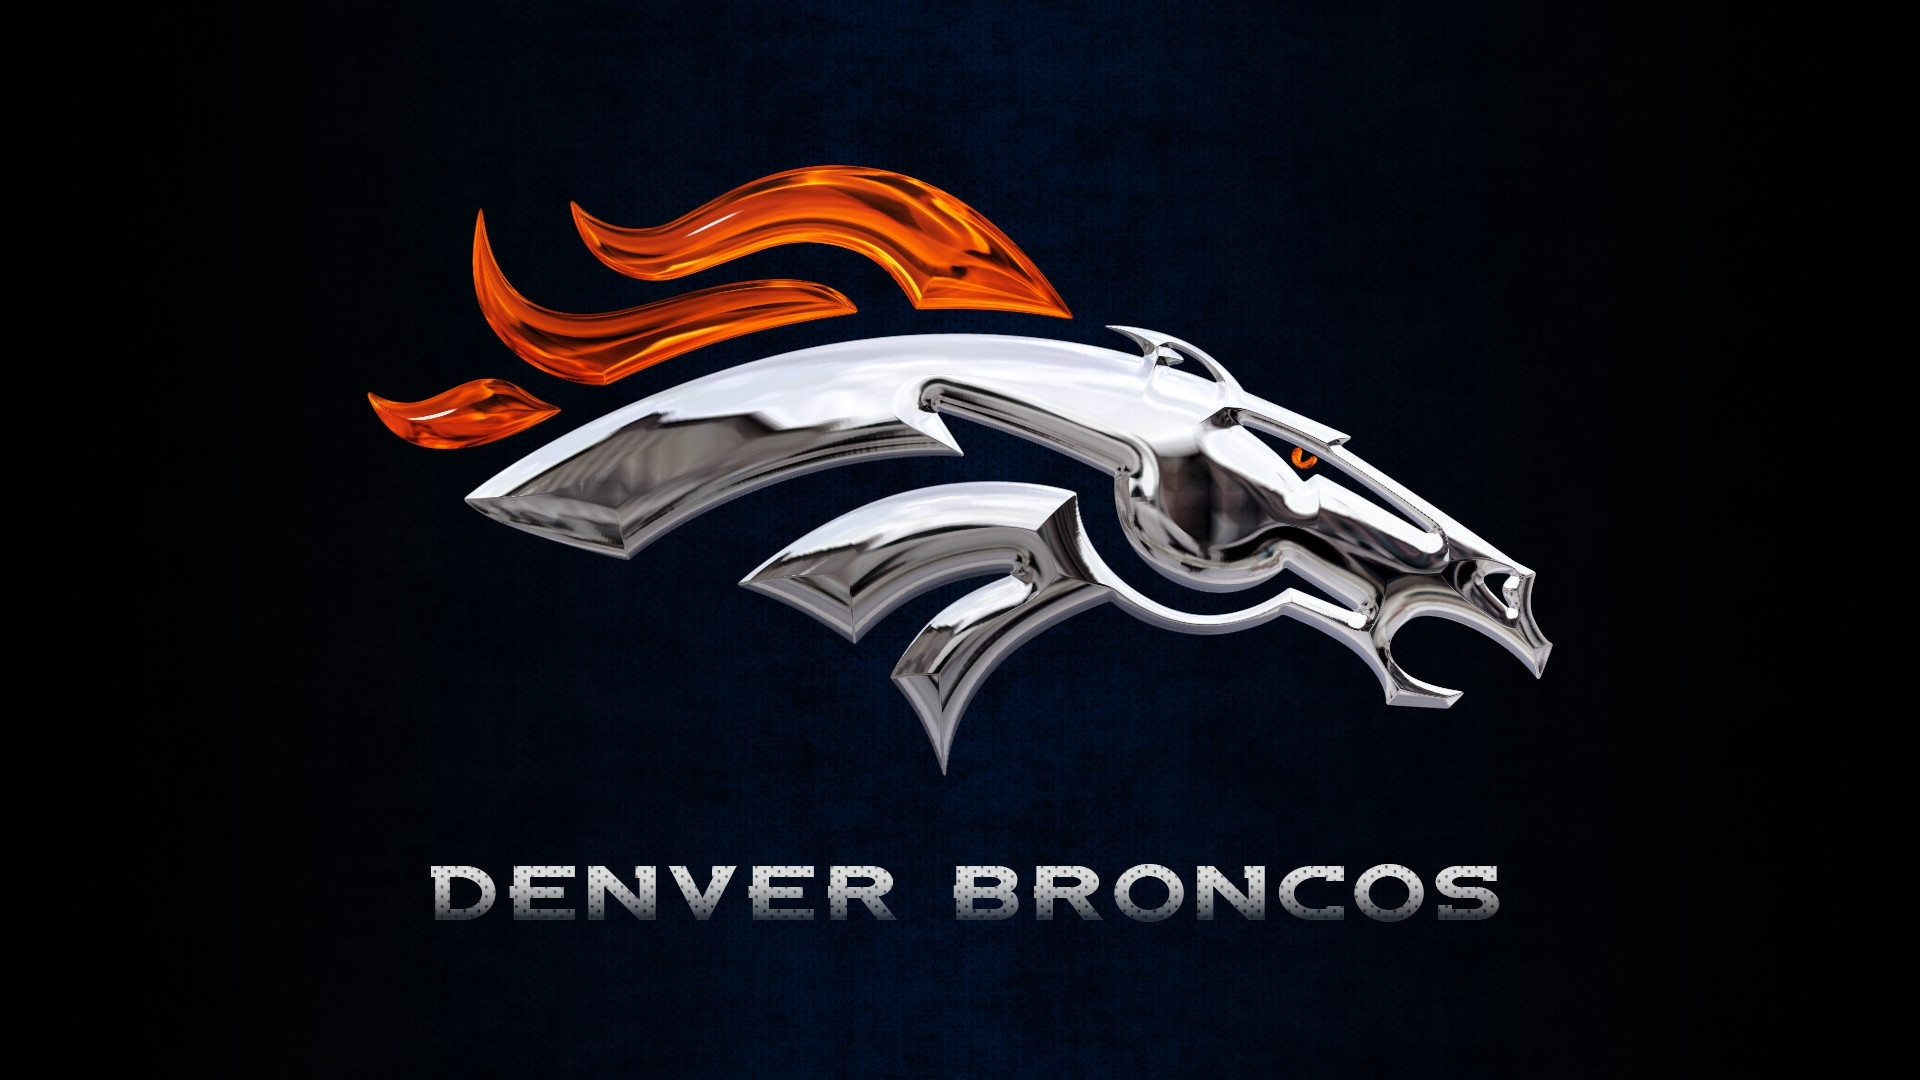 denver broncos screensavers wallpapers 3d (63+ images)